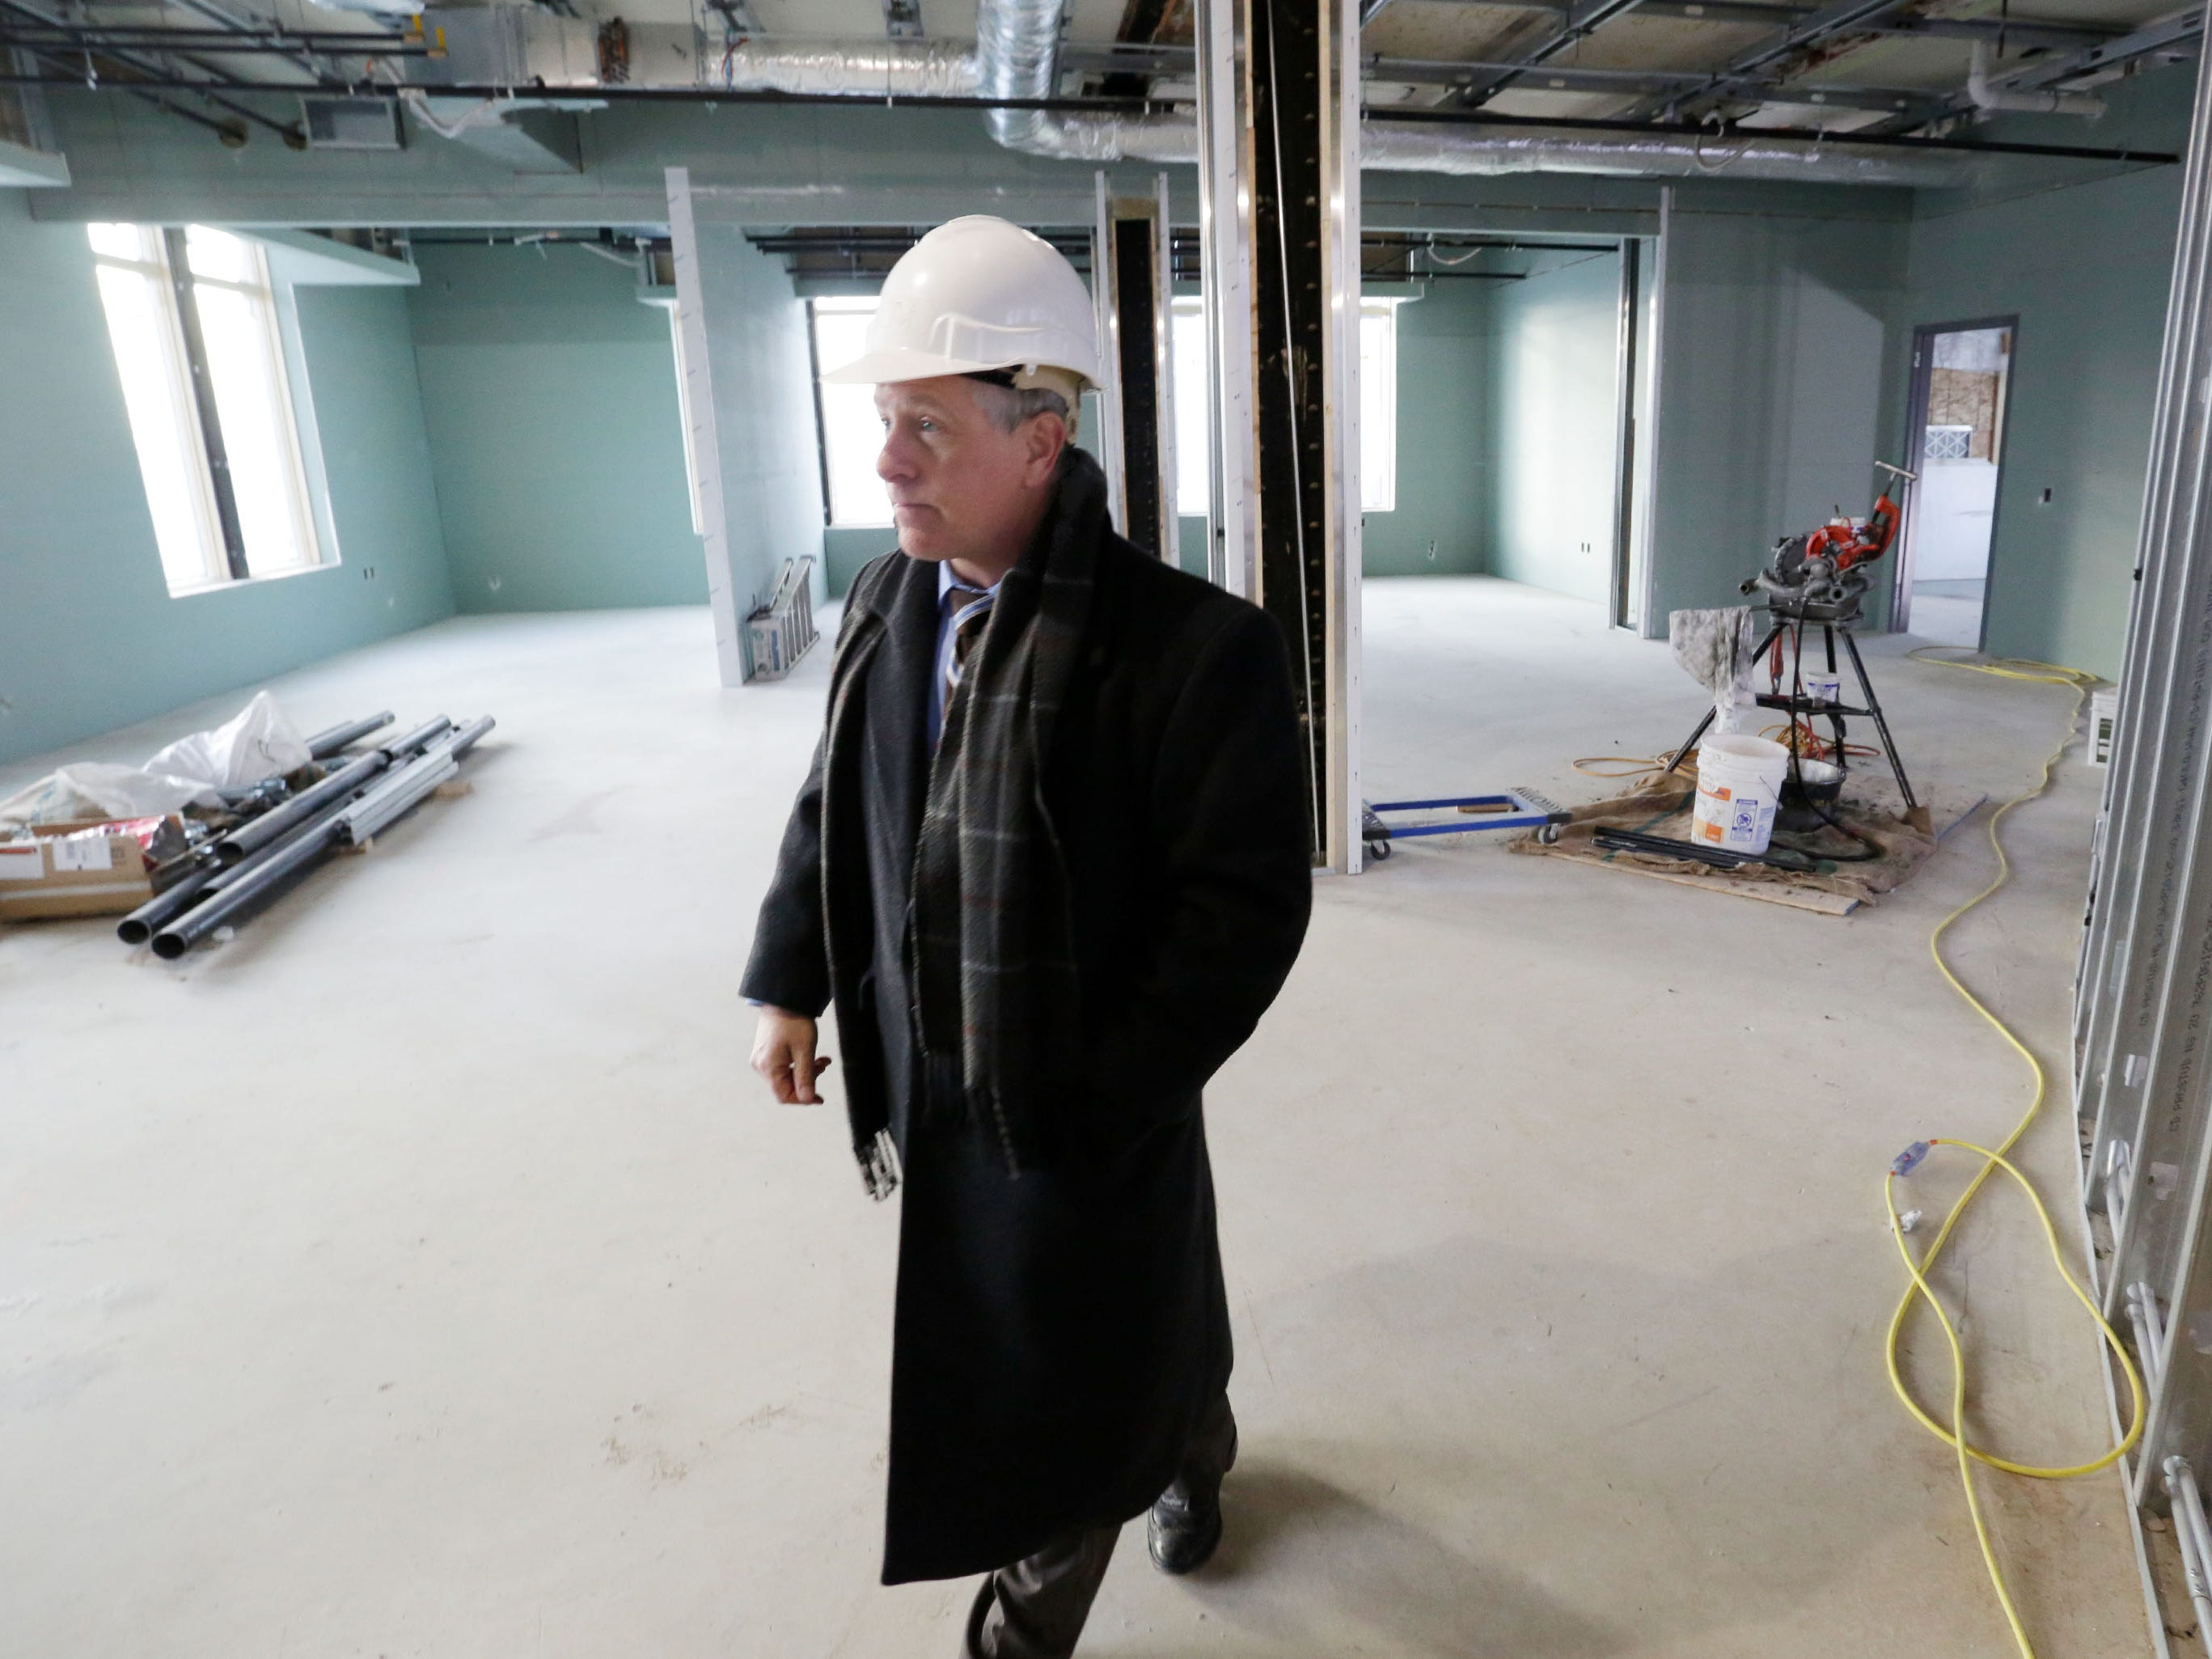 Sheboygan Director of Public Works Dave Biebel walks in a construction area at Sheboygan City Hall, Wednesday, December 5, 2018, in Sheboygan, Wis. The facility is undergoing renovated that is budgeted for 10.5 million dollars.